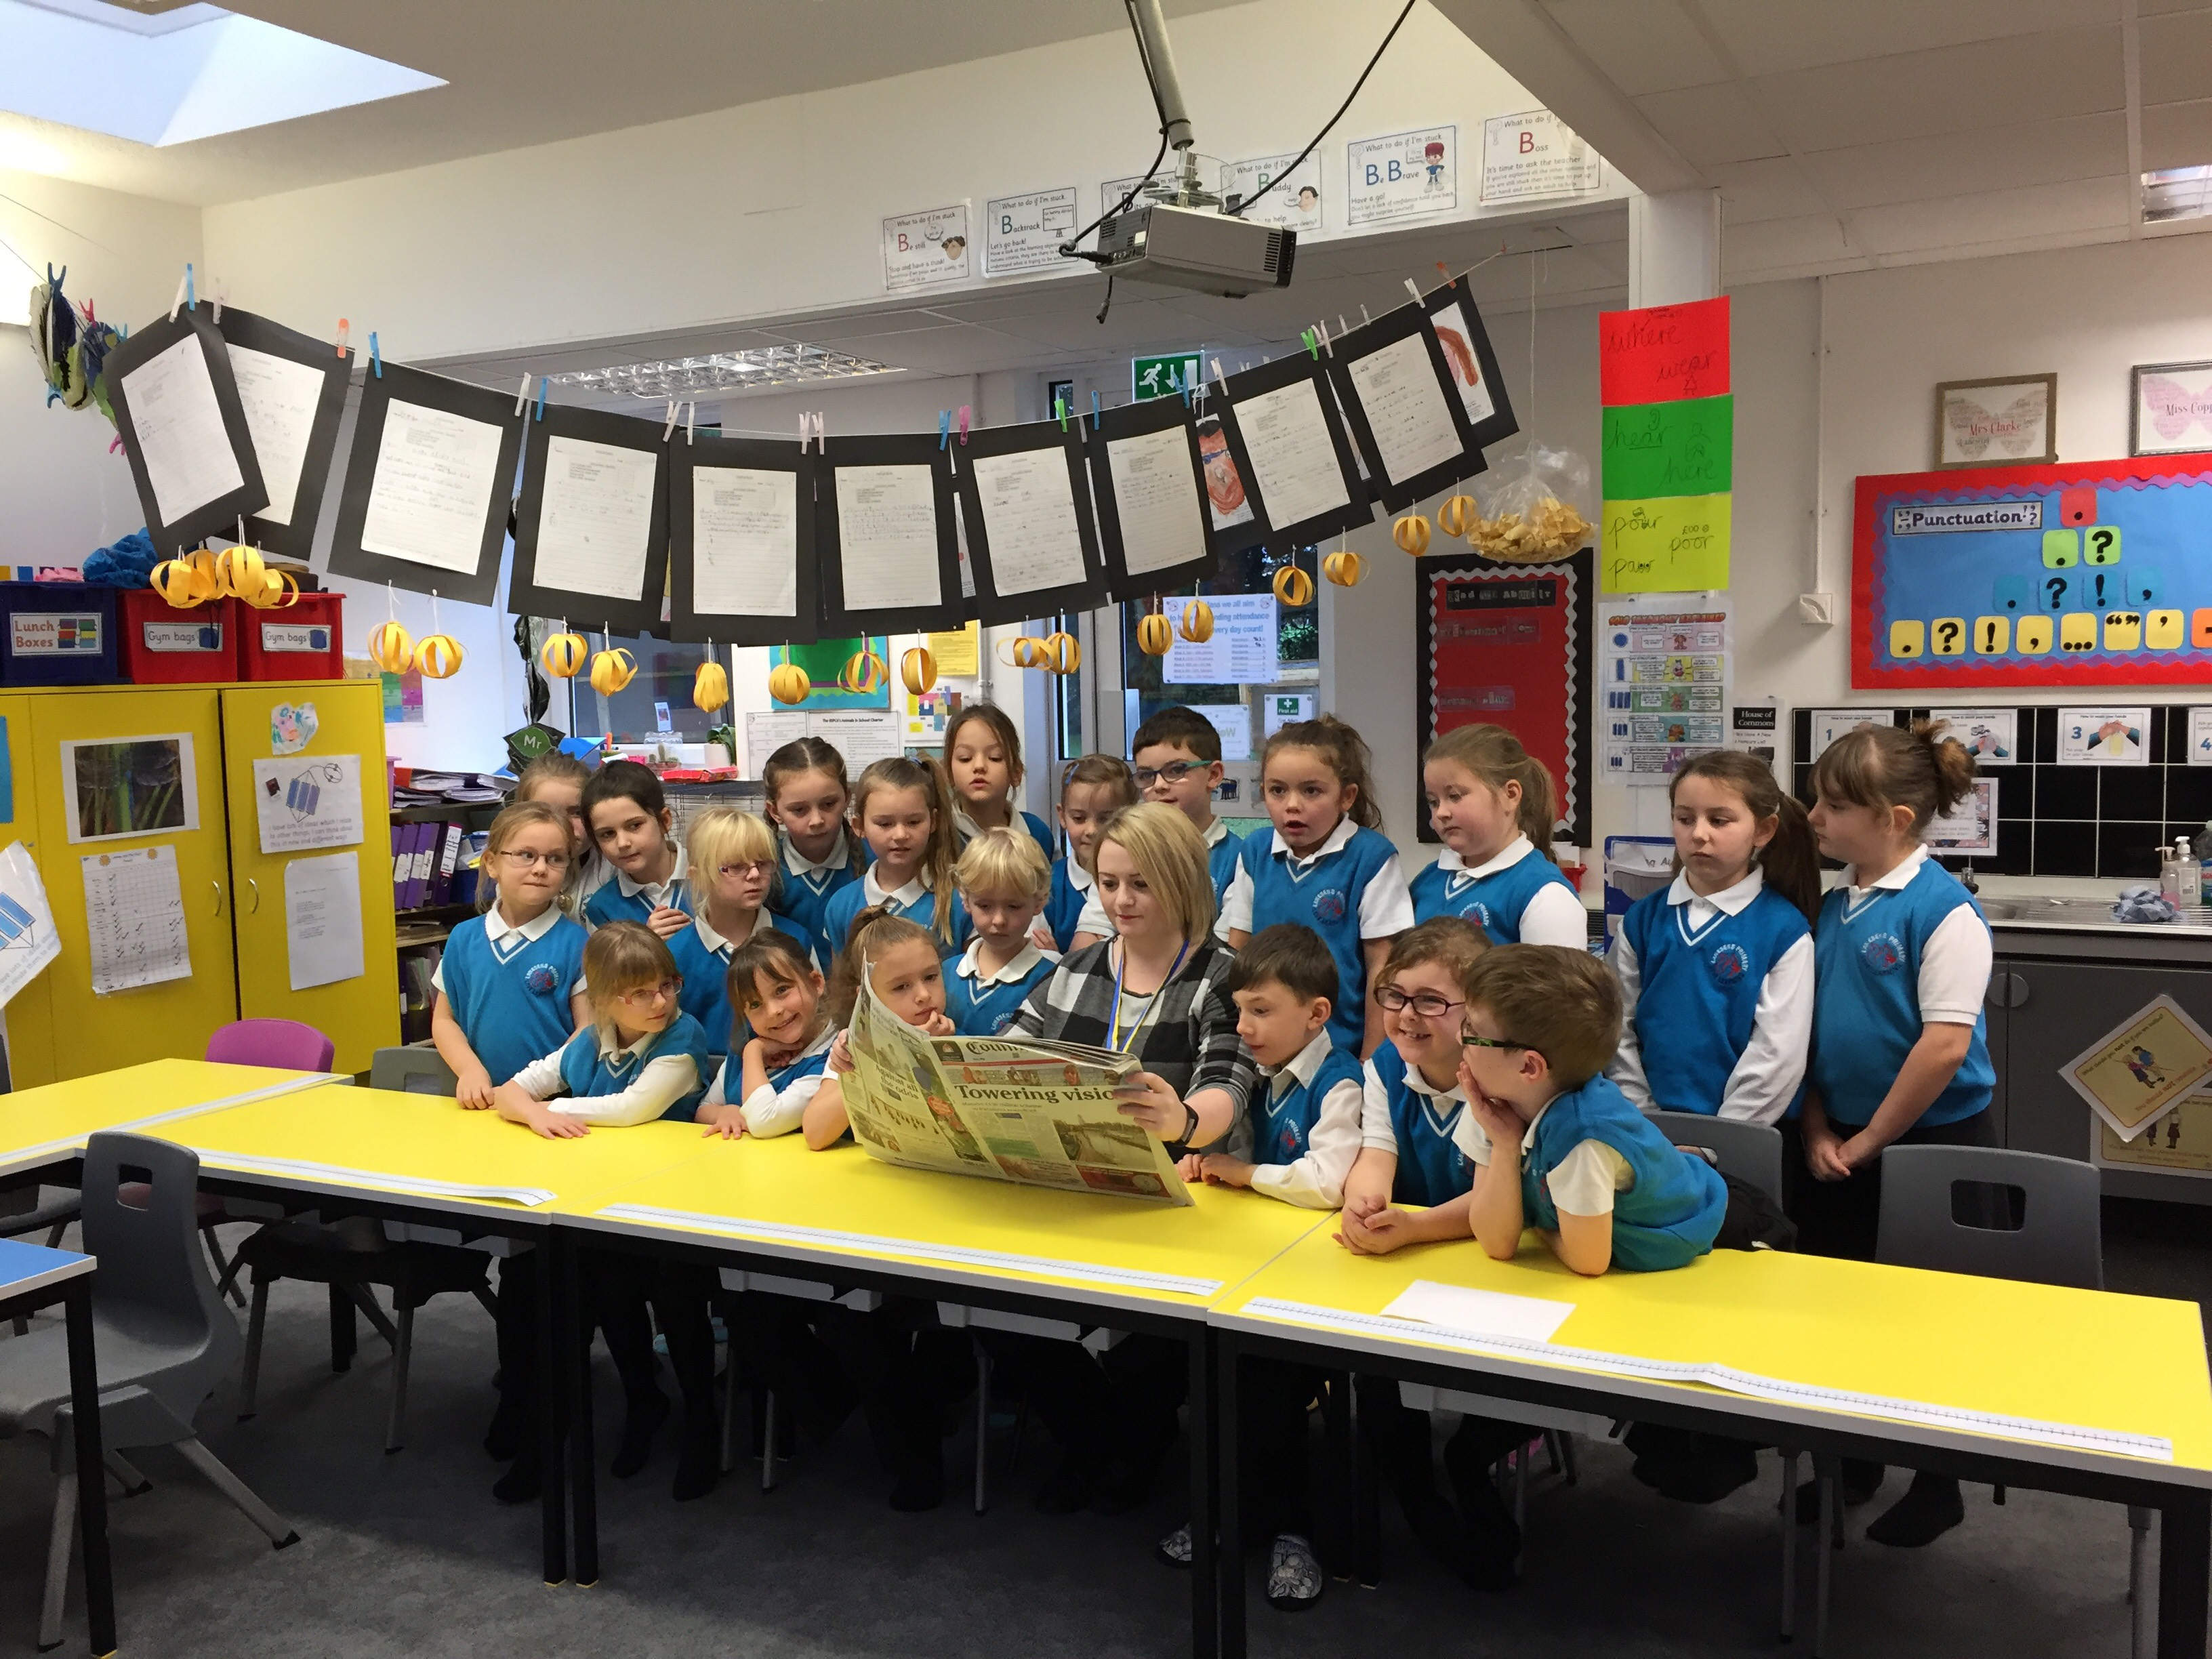 News reporter visits Year 2